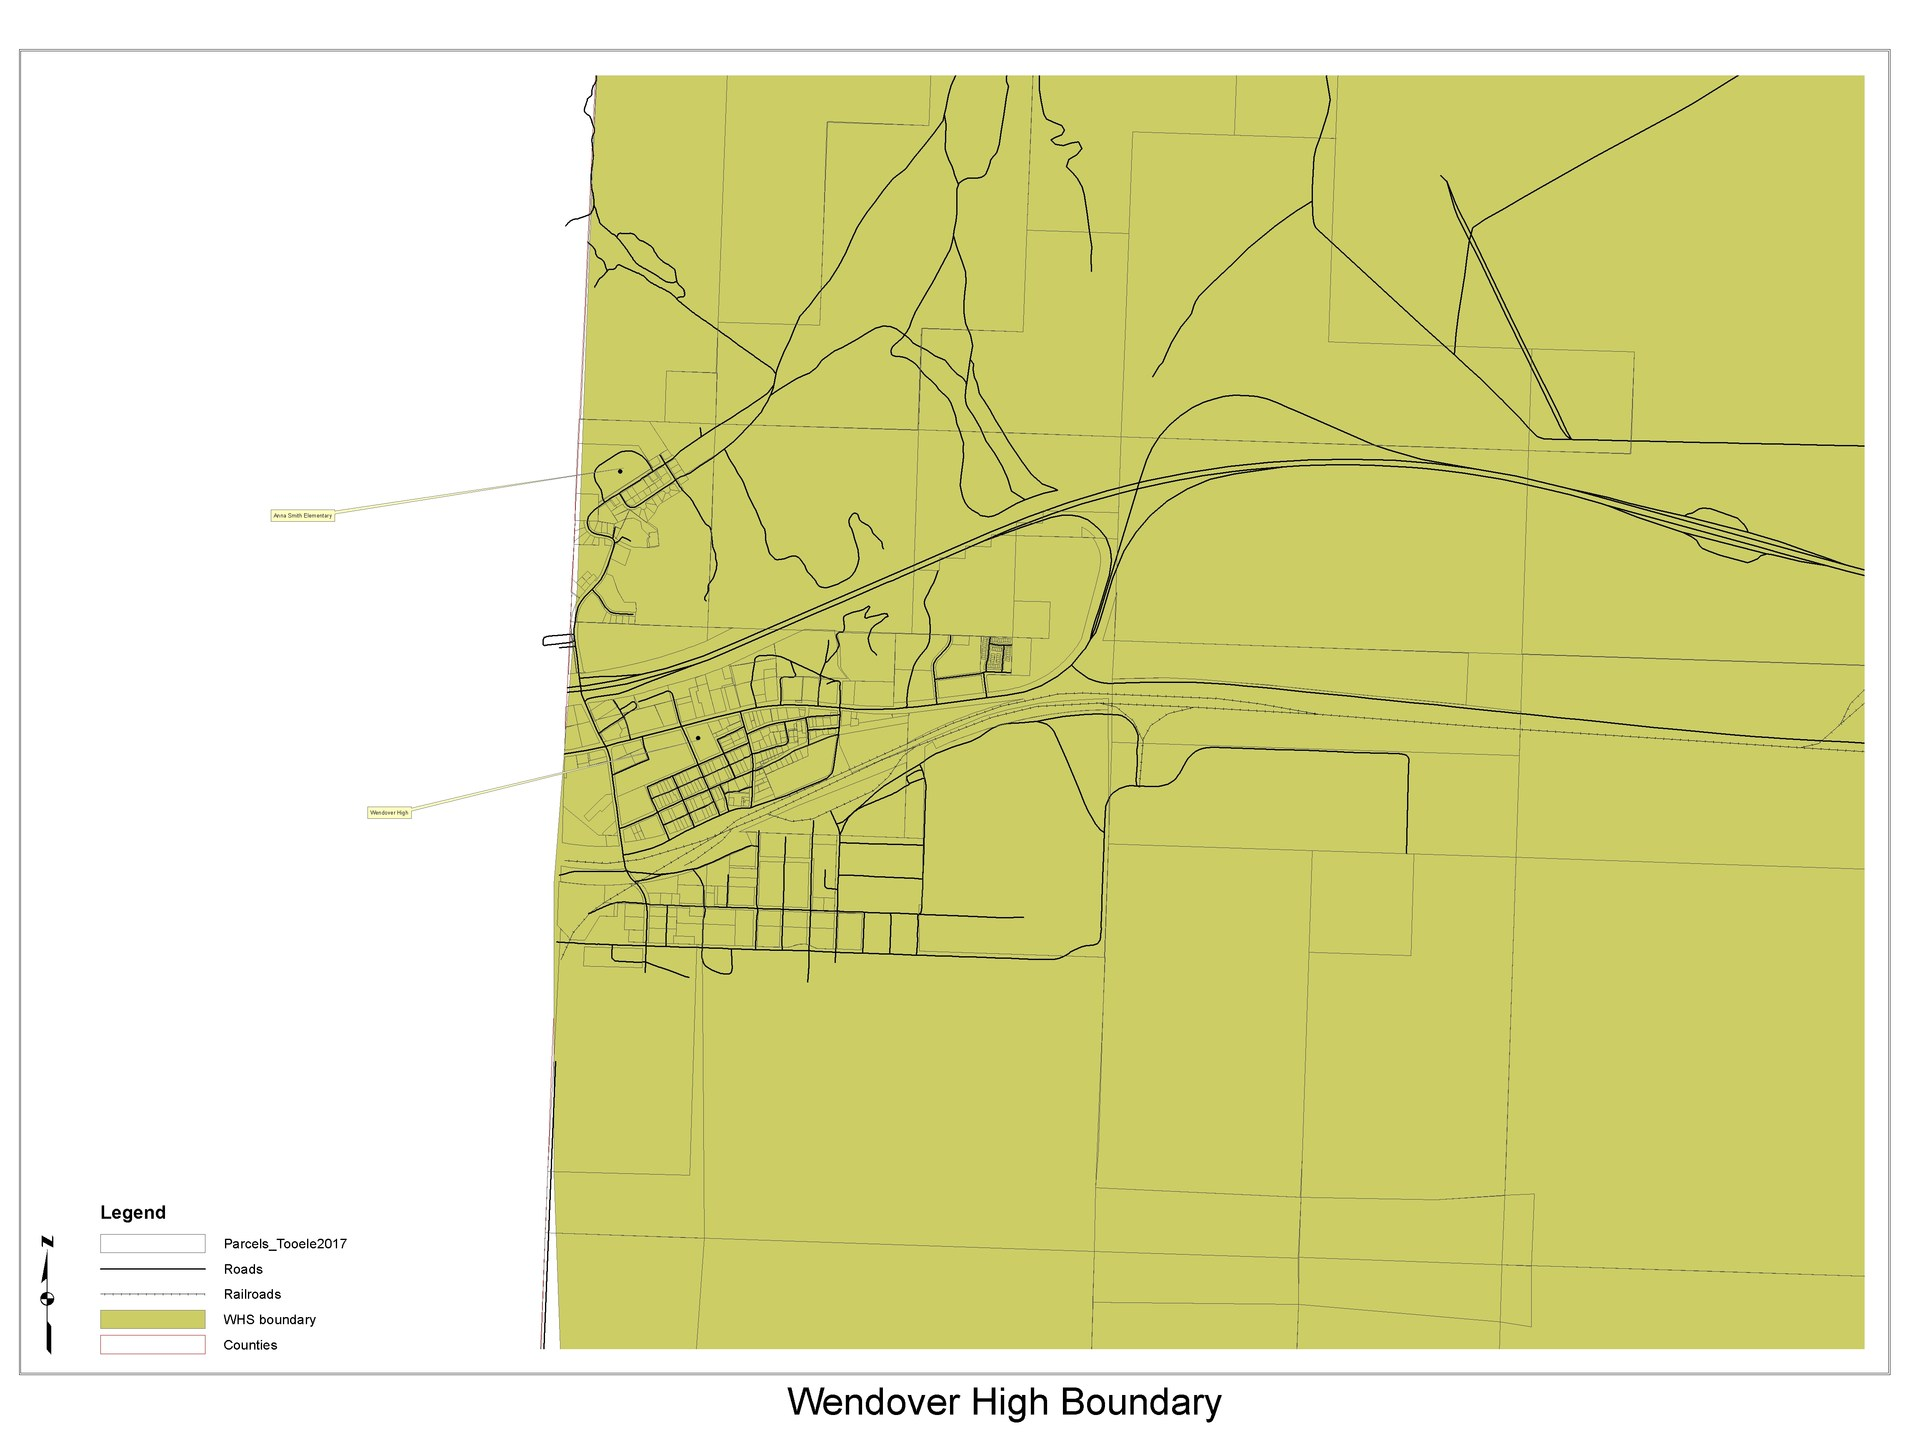 Wendover High School boundary